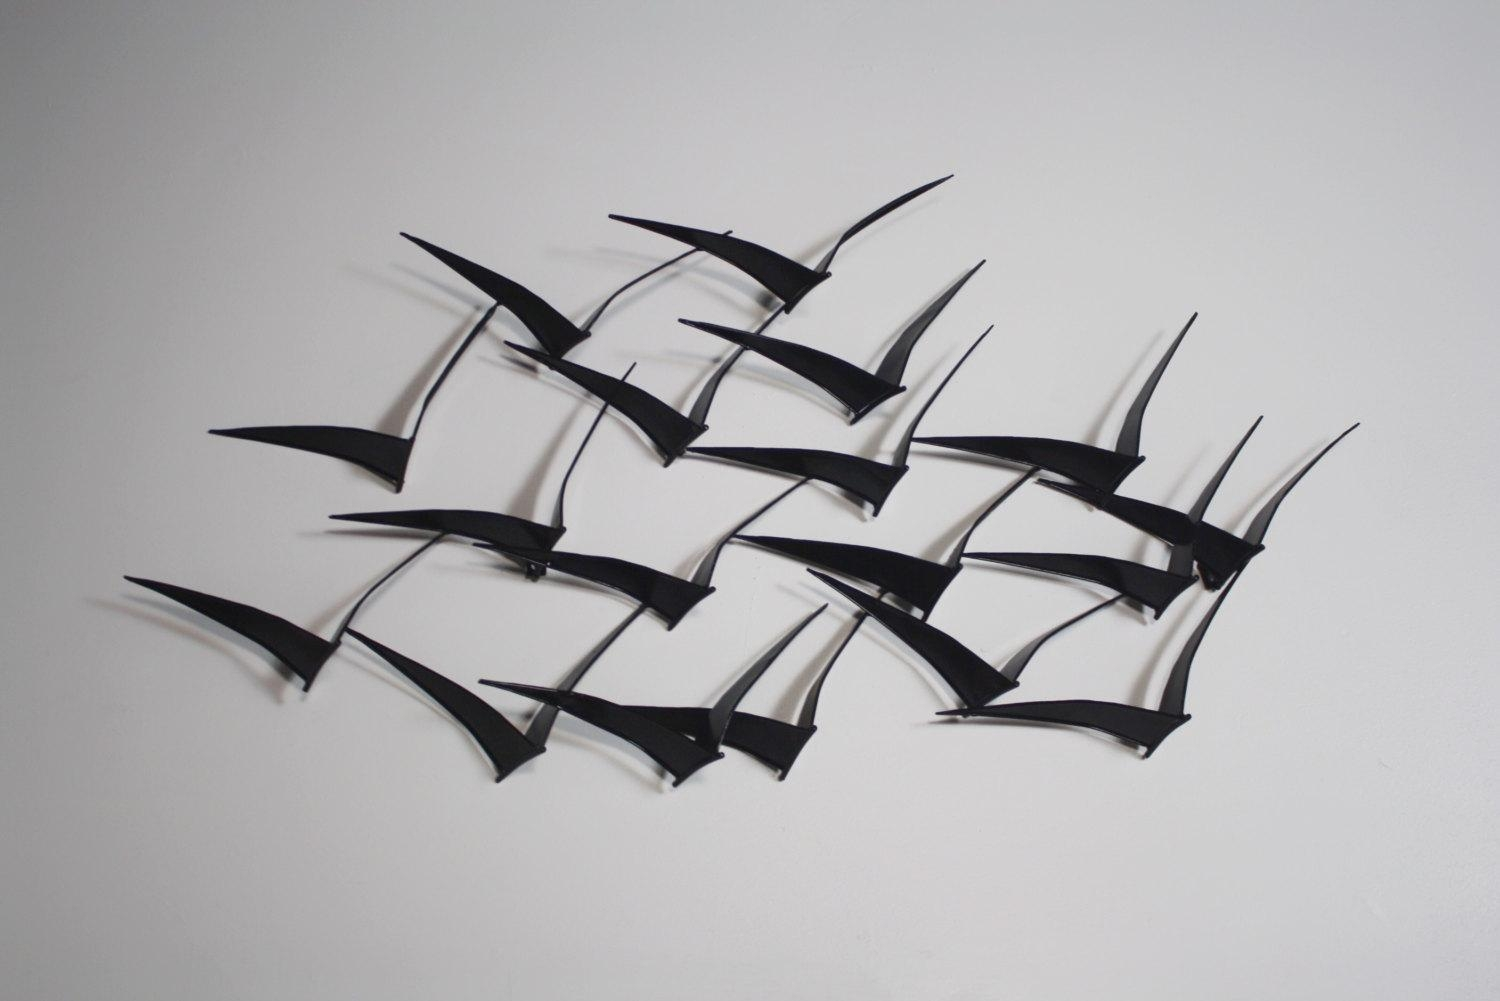 Art & Decor – Abt Modern Inside Birds In Flight Metal Wall Art (Image 2 of 20)